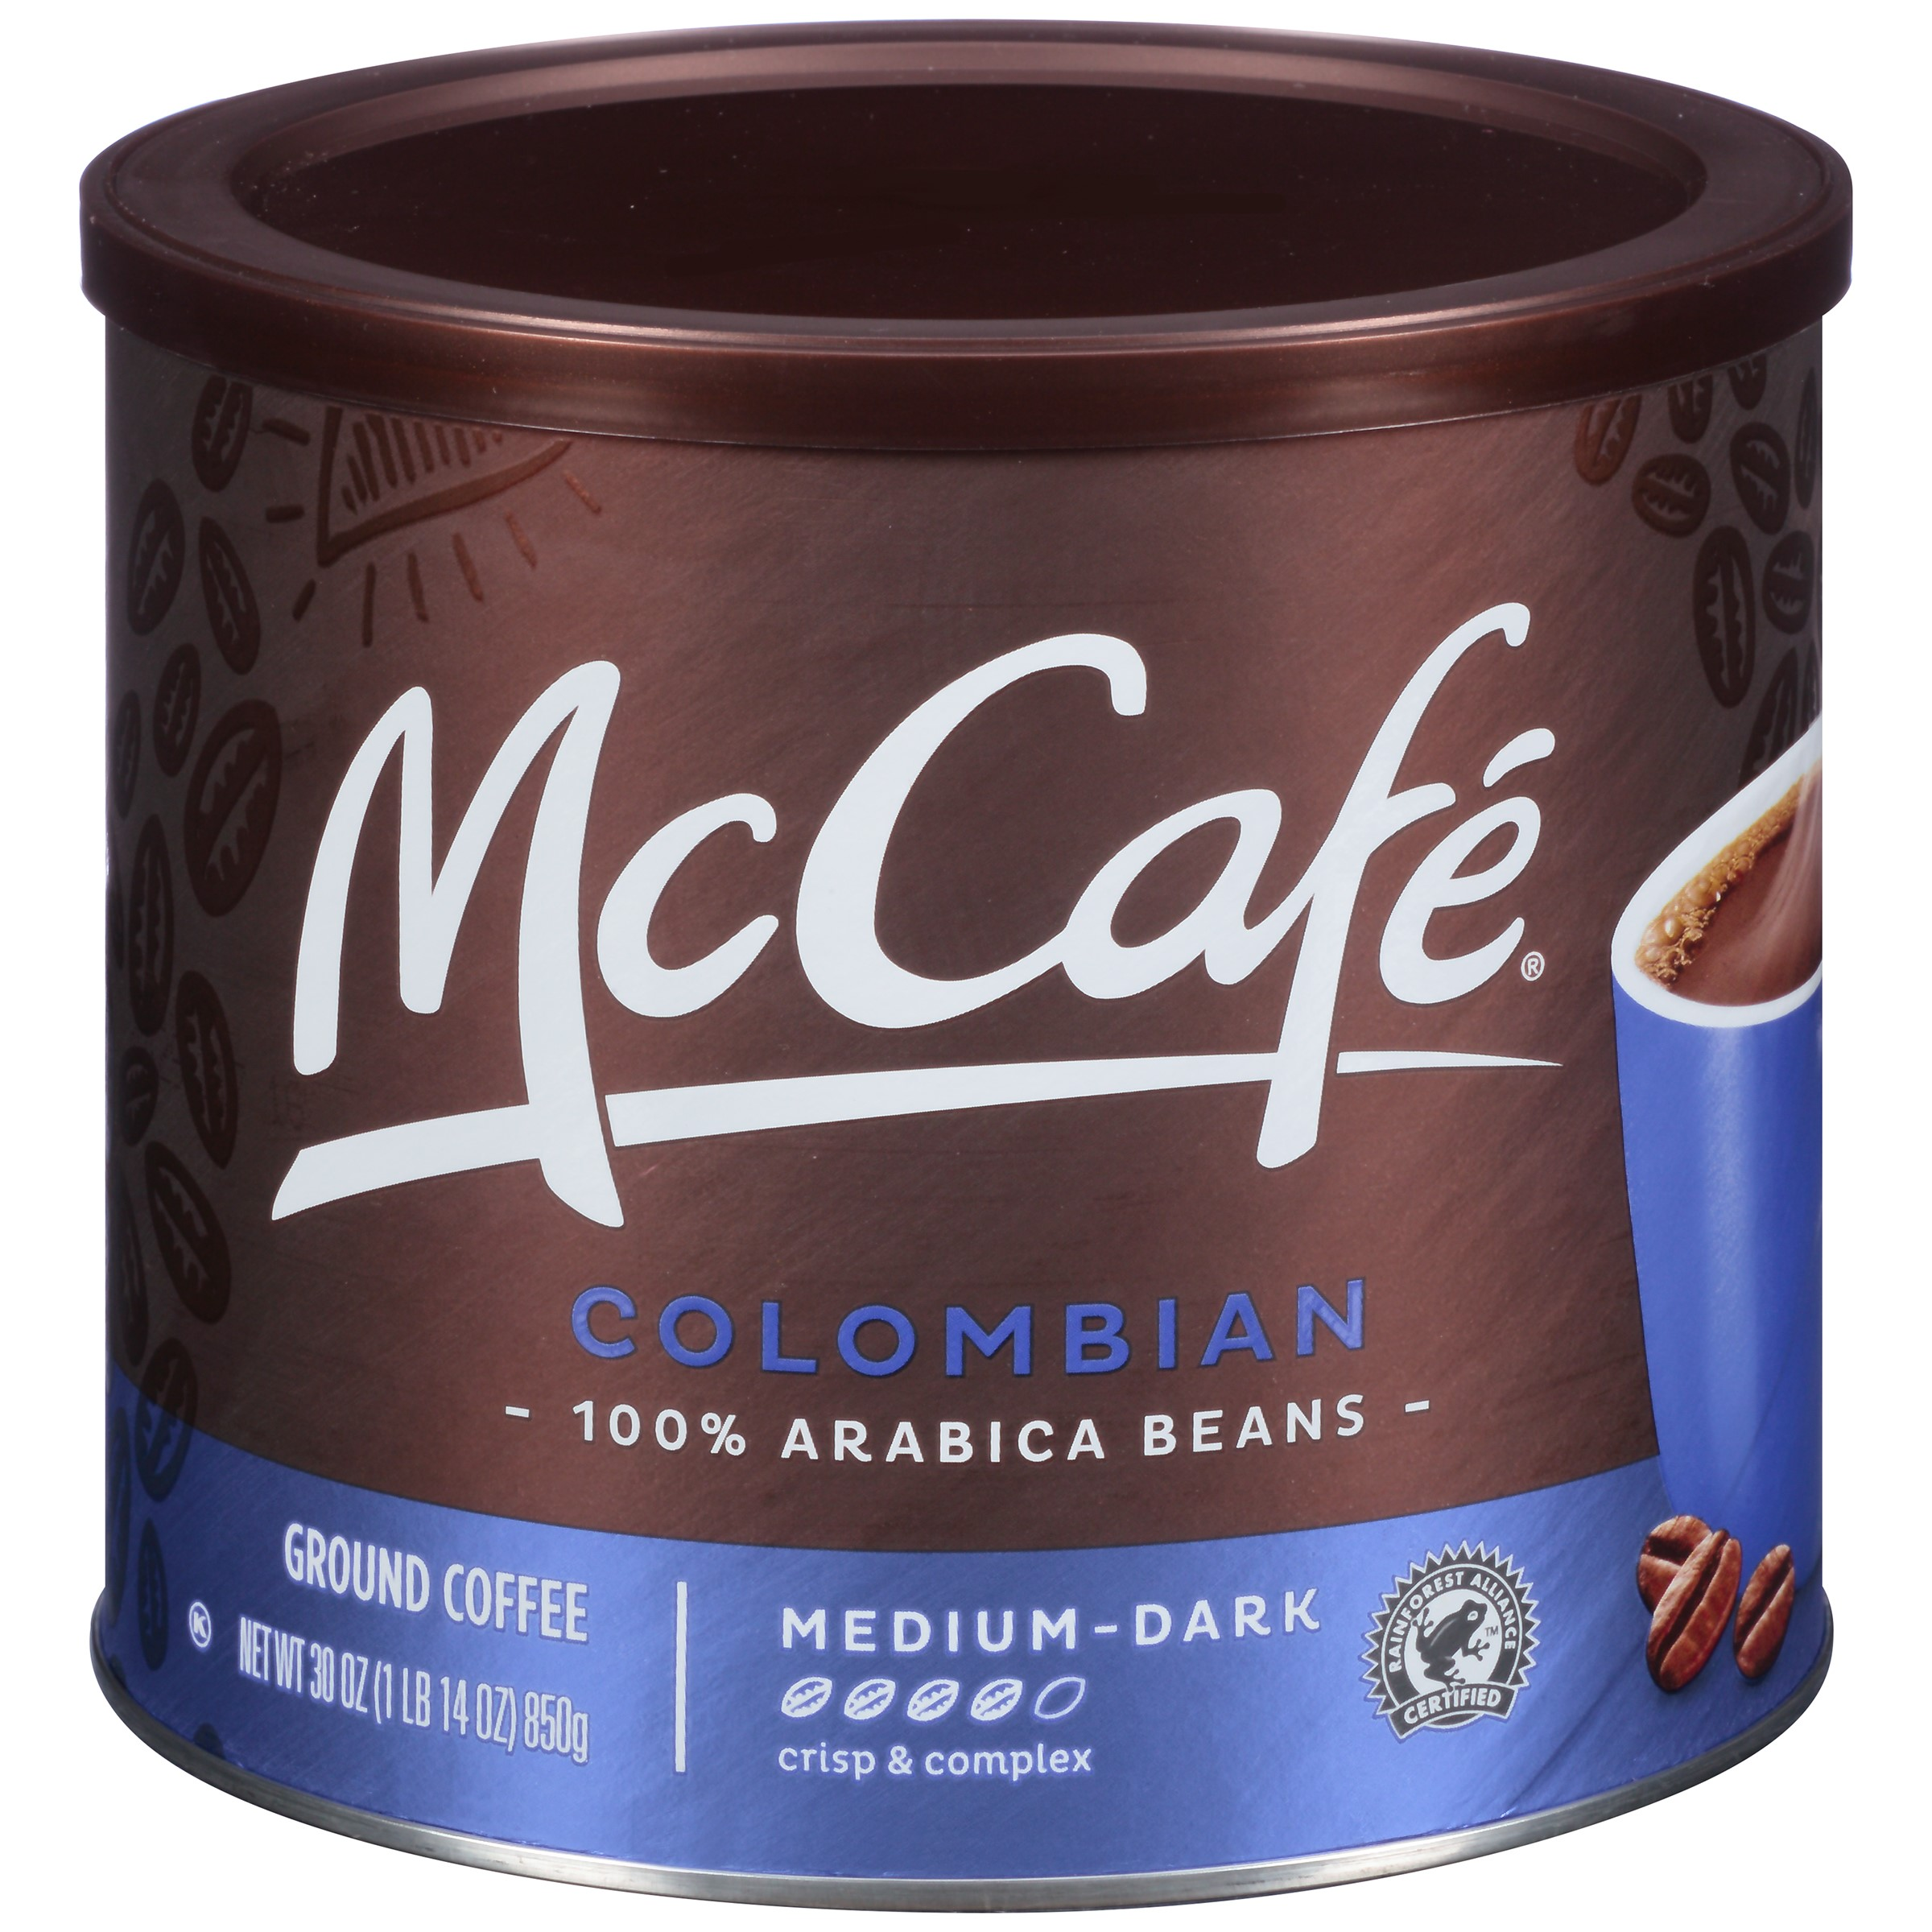 McCafe Colombian Ground Coffee 30 oz. Canister